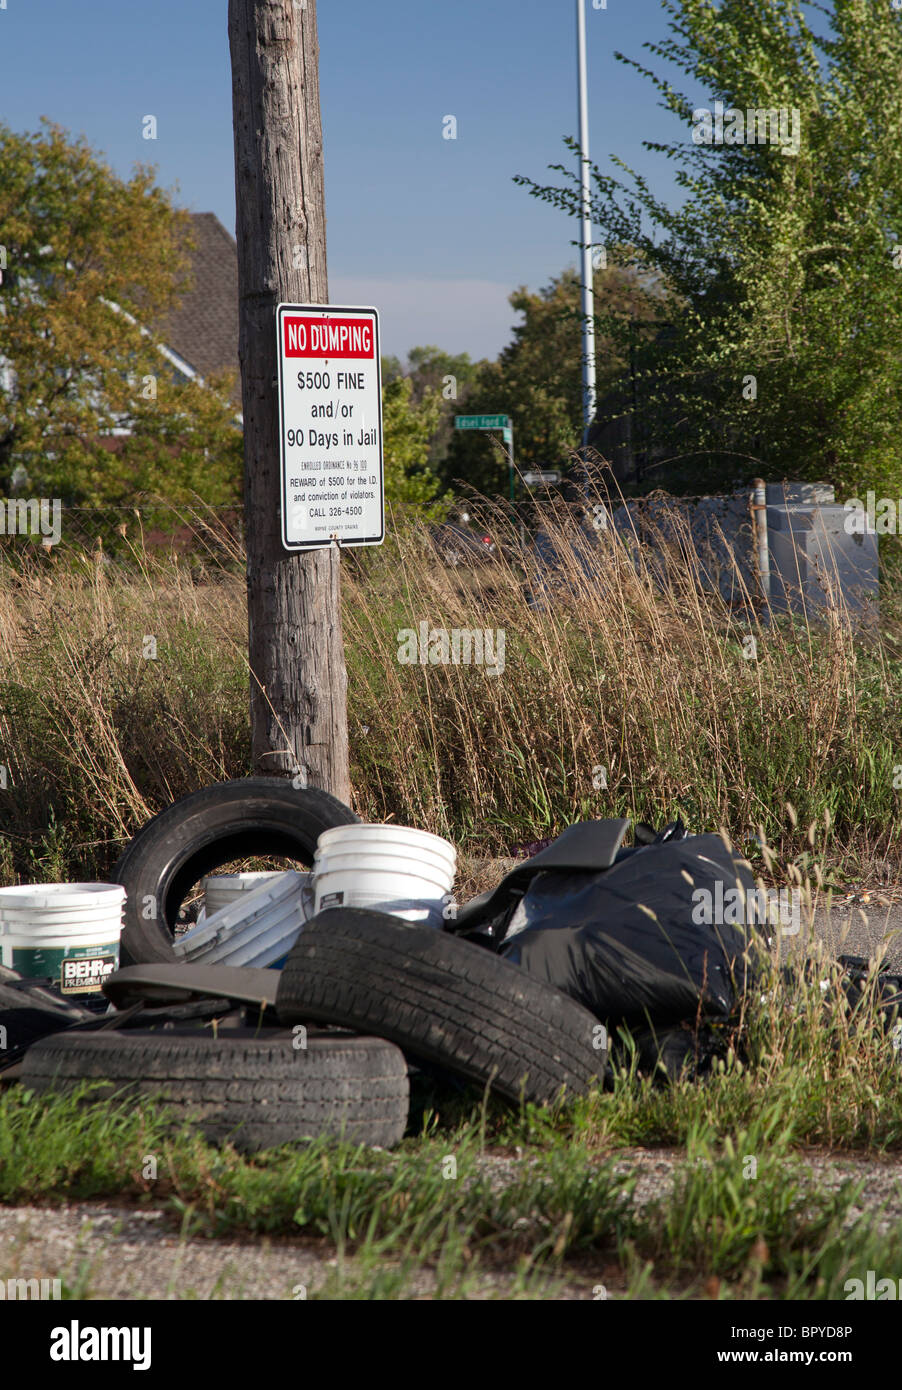 Detroit, Michigan - Old tires and other garbage is dumped in an alley next to a sign warning of penalties for illegal - Stock Image